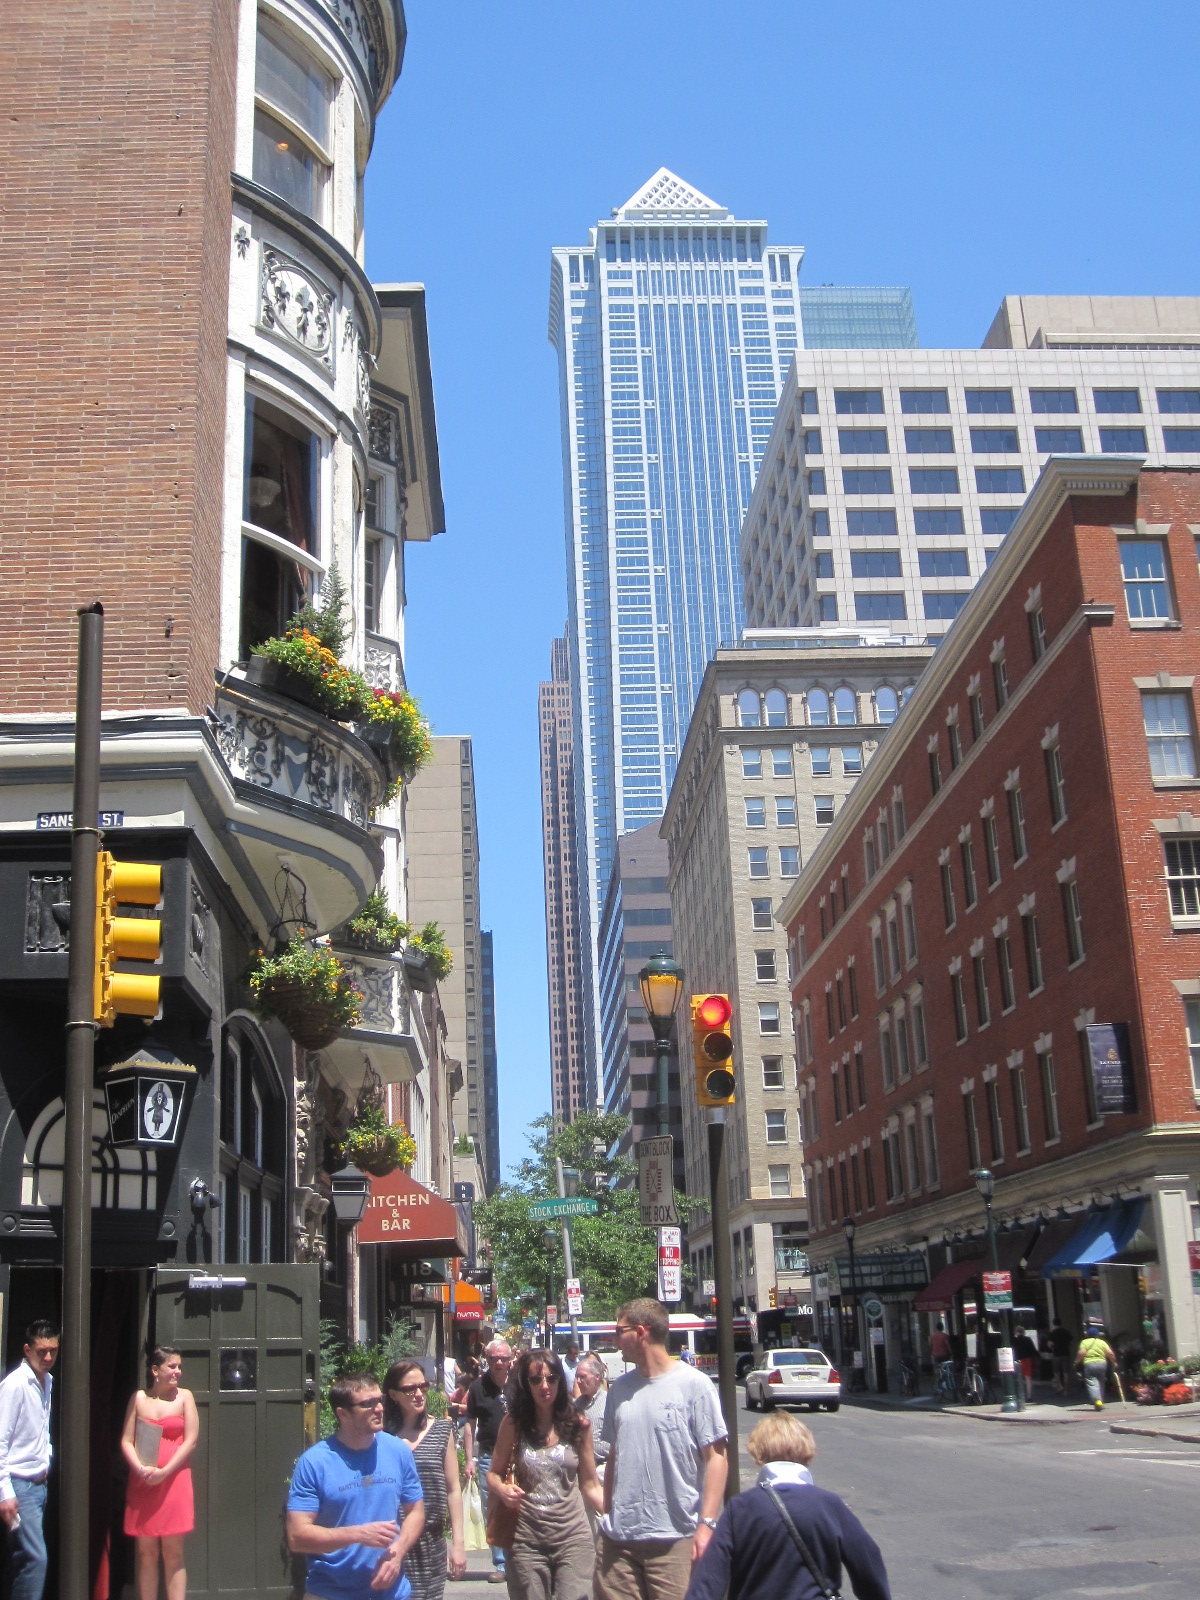 Streetscape To The North Of Hickory Click To Close: What Cities Have The Best Streetscape? (Boston, Chicago